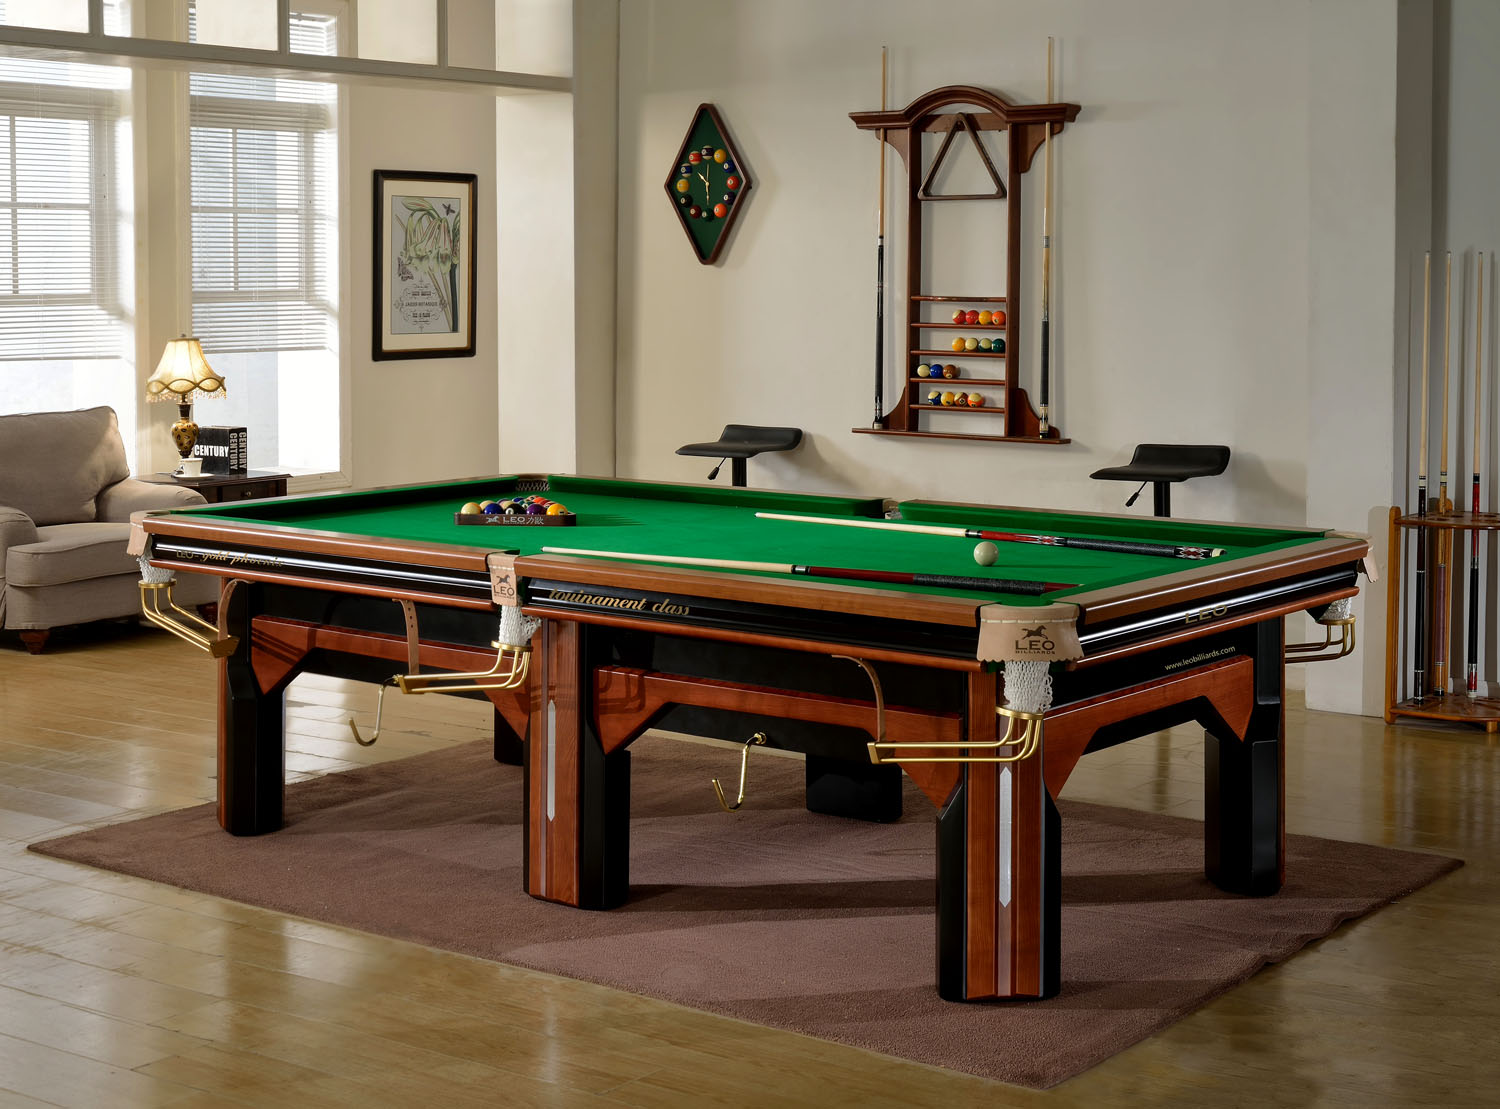 http://www.legobilliards.com.cn/upload/images/201506/14349338053479.jpg